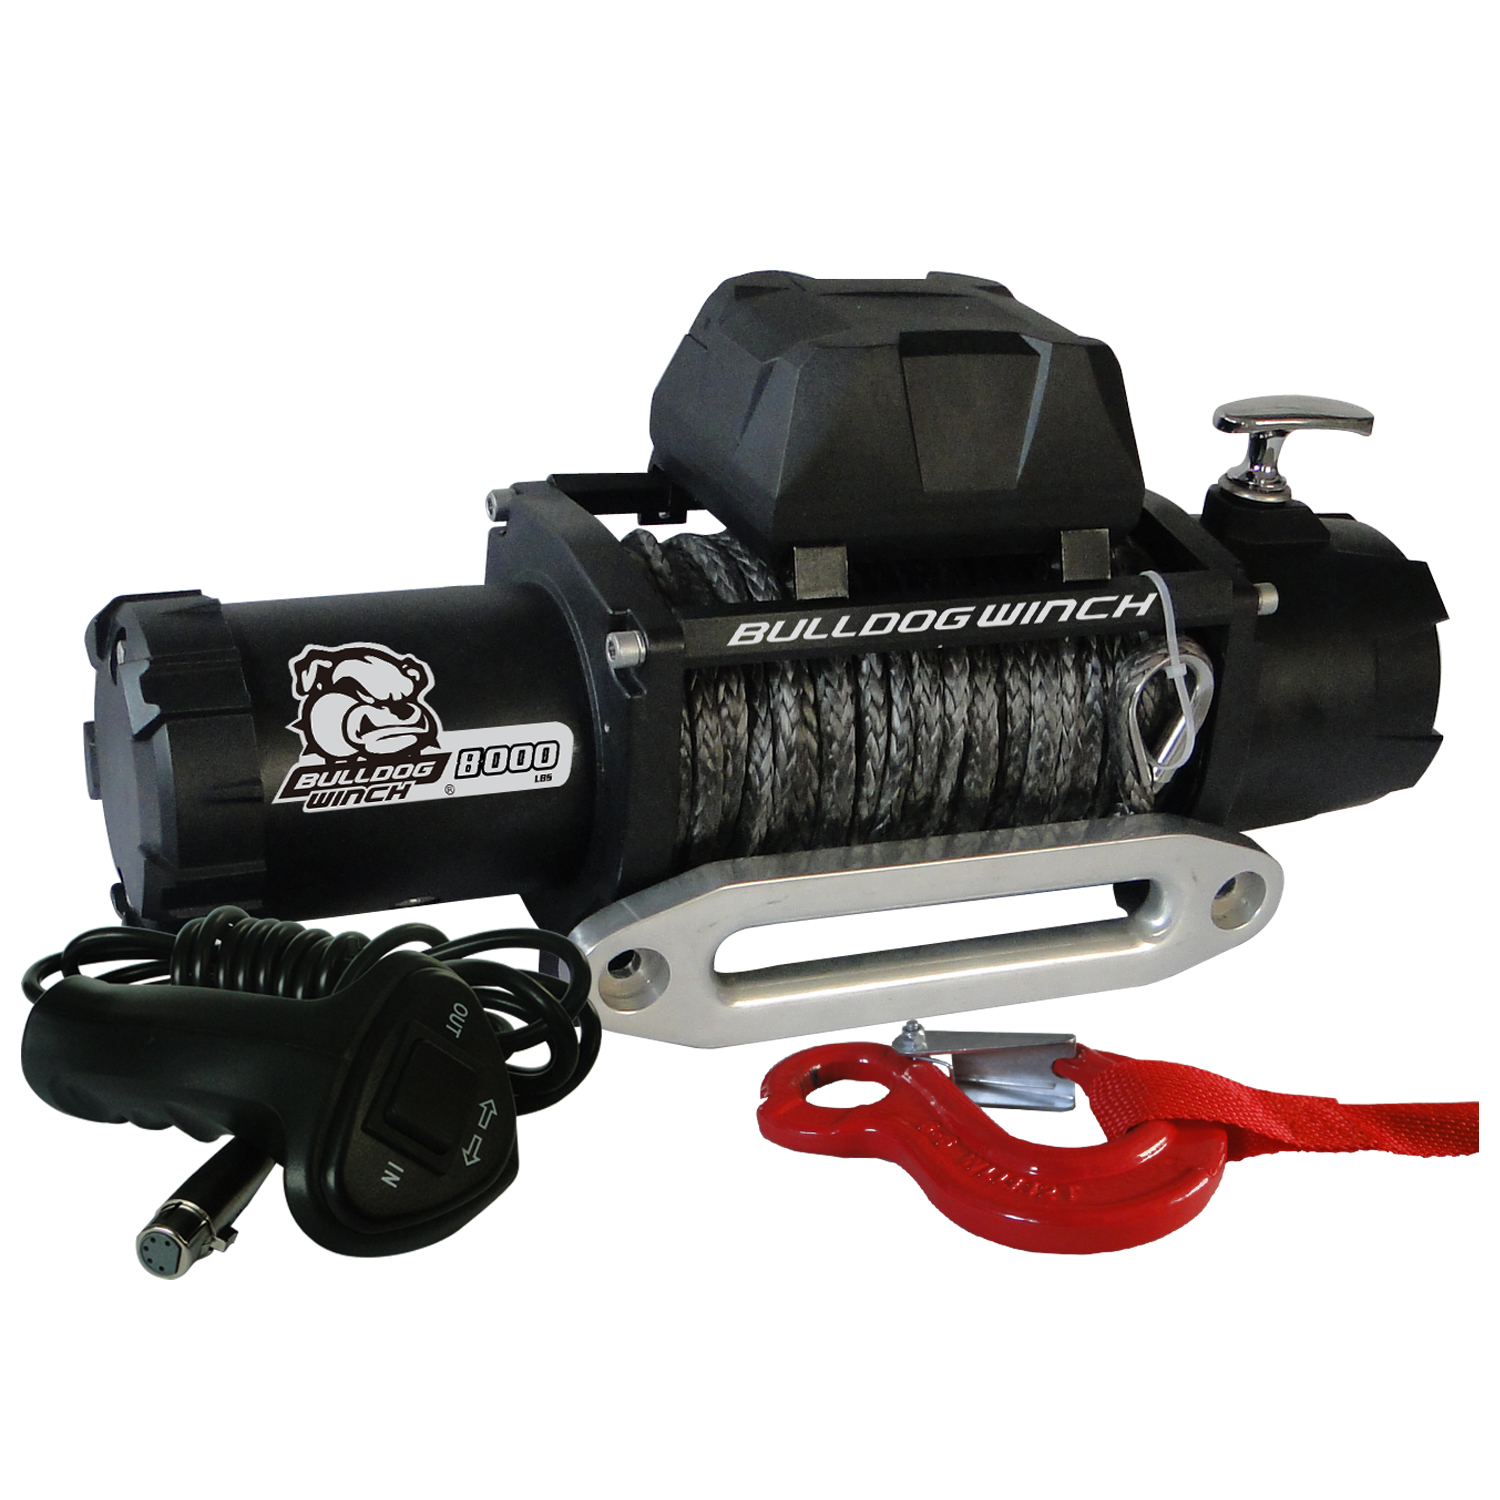 Bulldog Winch 8,000lb Winch w/ 100ft Synthetic Rope